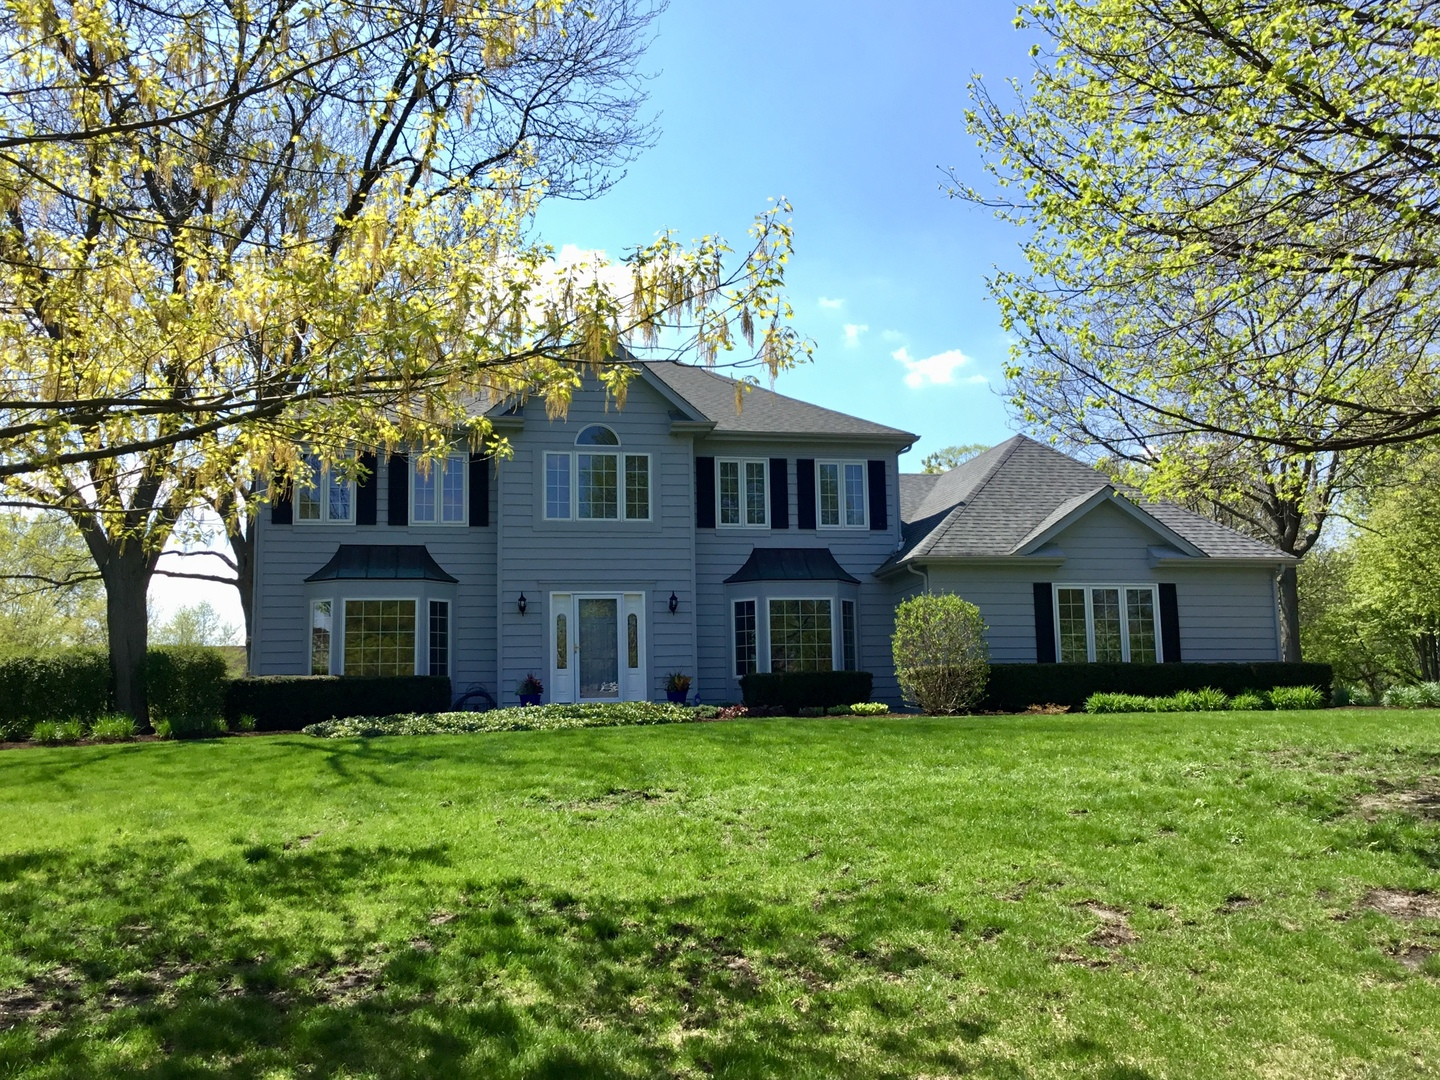 22249 Cambridge Drive, Kildeer, Illinois 60047